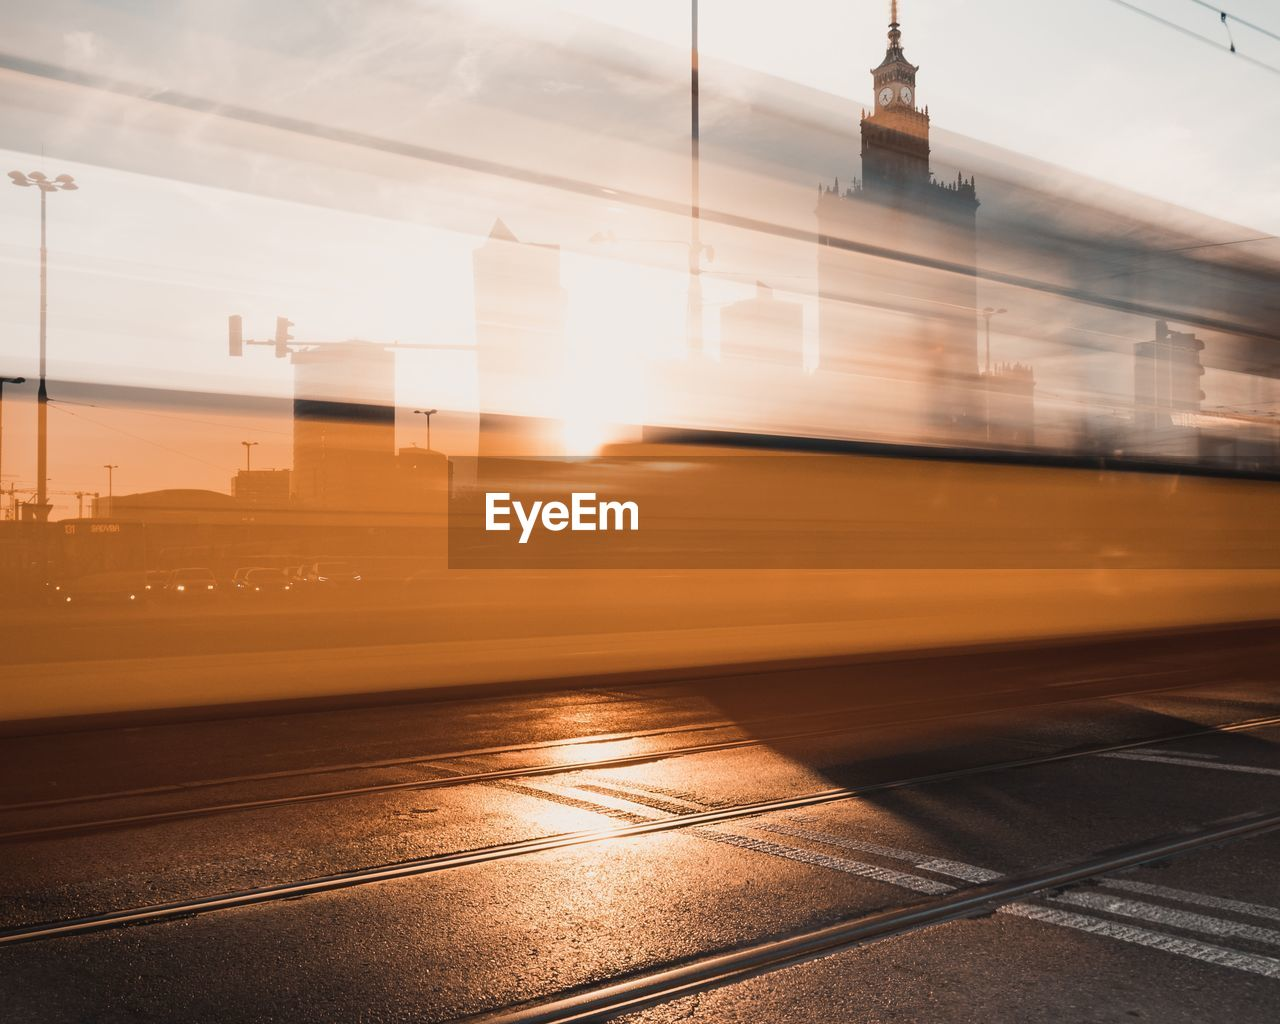 Blurred Motion Of Tram On Road In City During Sunset